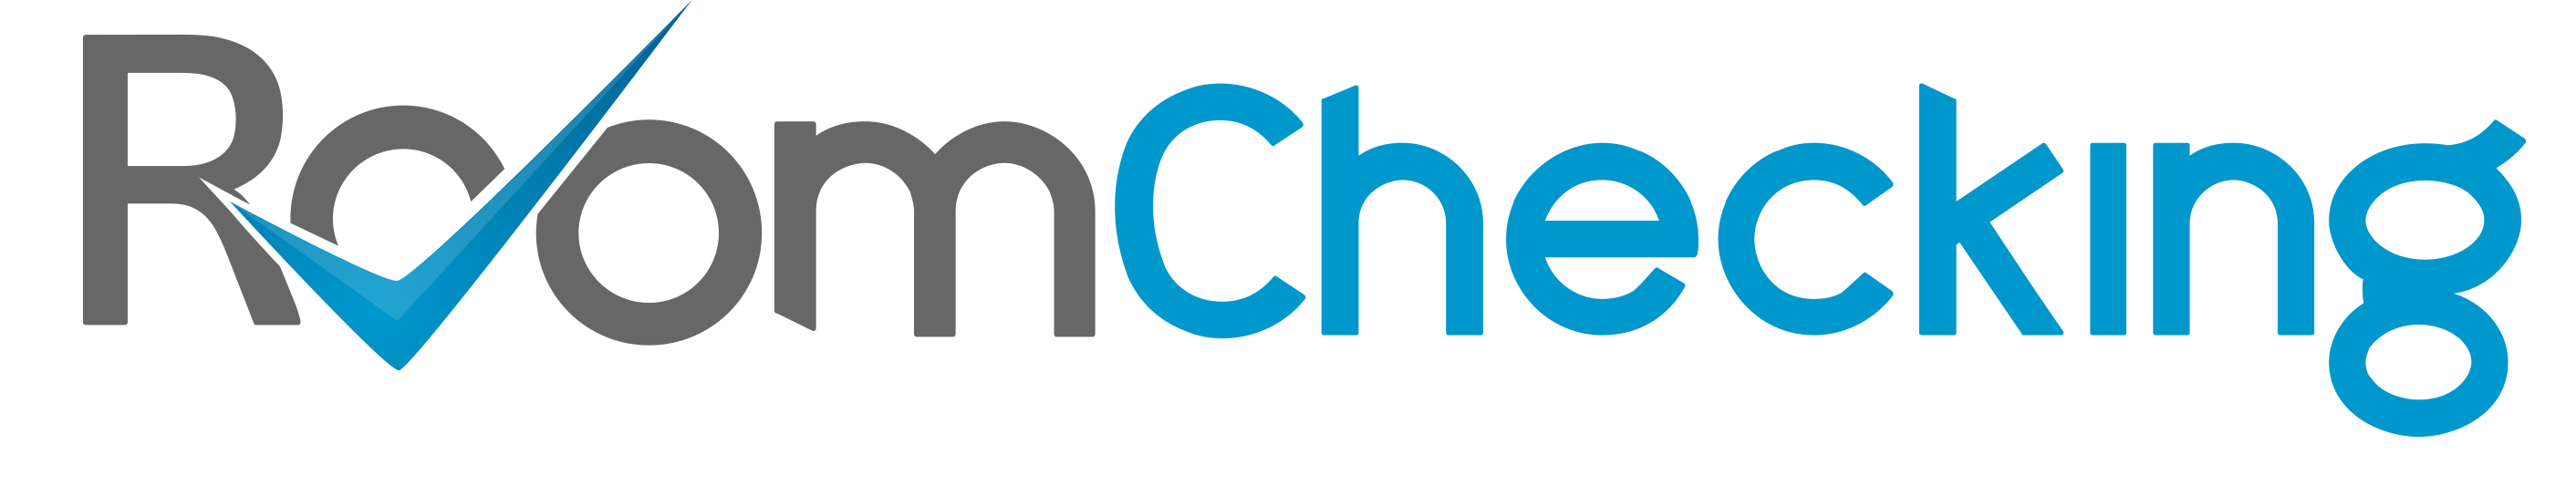 RoomChecking-logo-inline.png